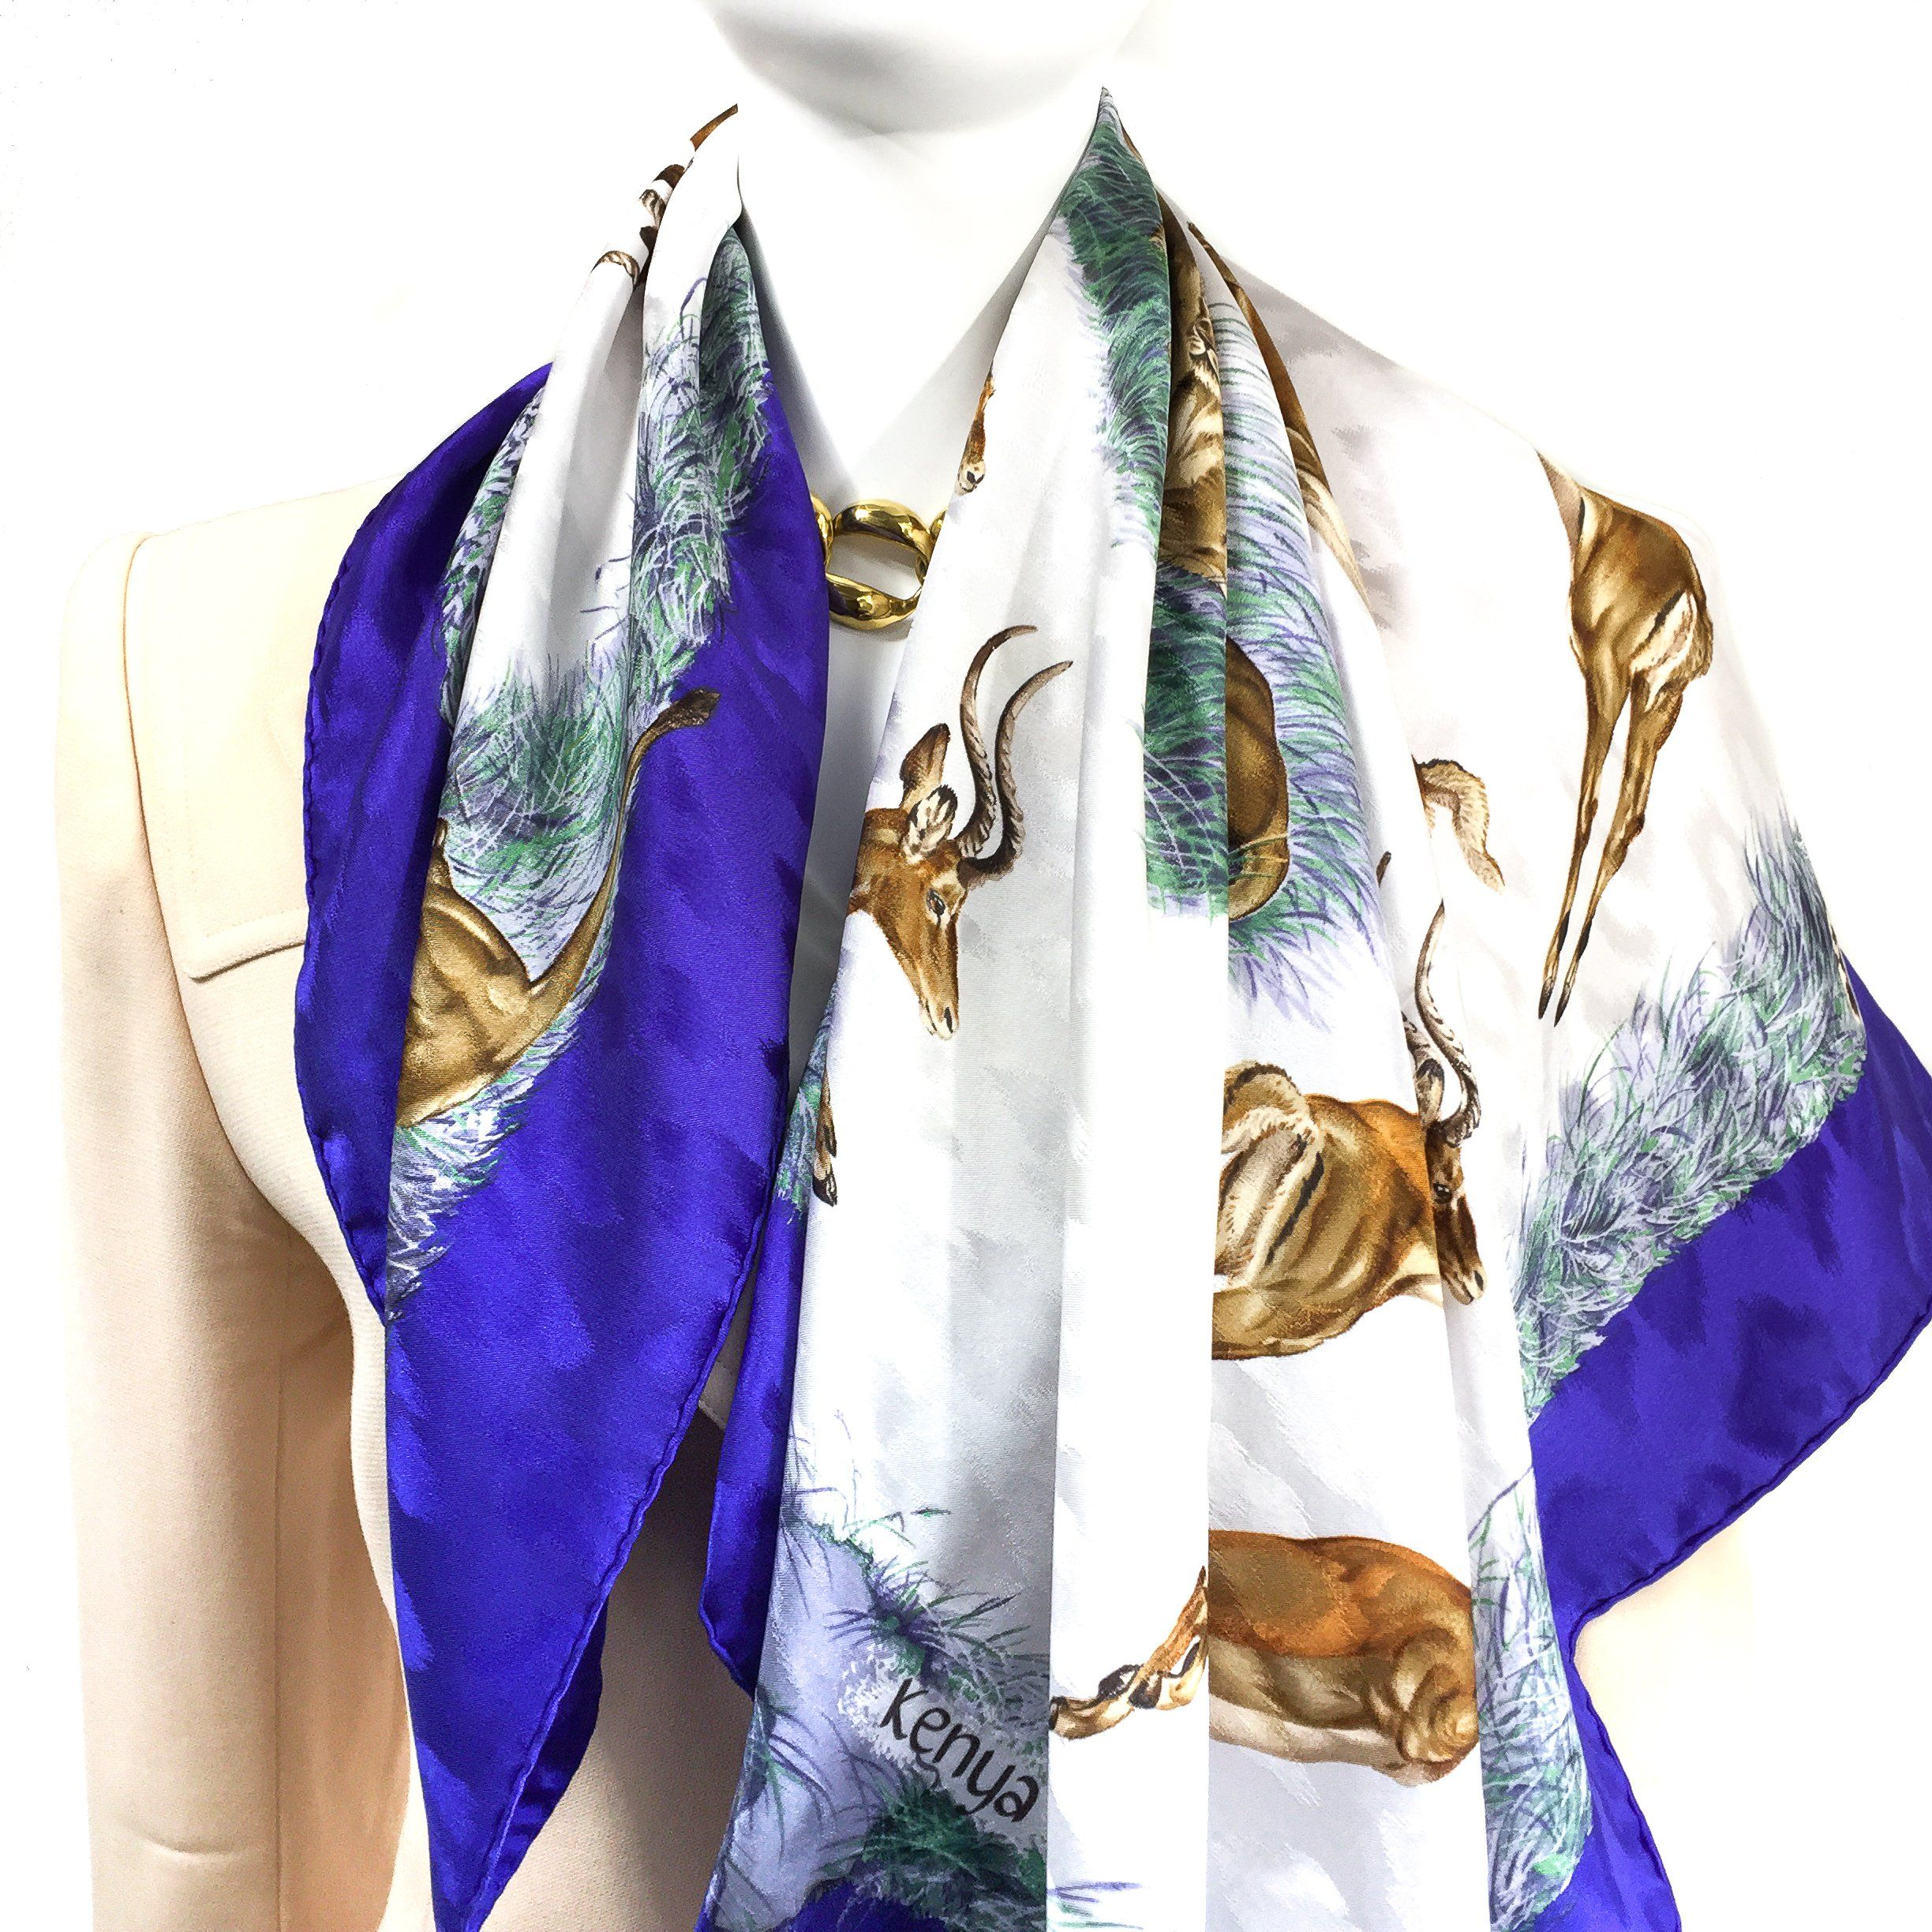 Kenya Hermes Silk Jacquard Scarf by Robert Dallet   Products   Silk ... 9a5ba5e58e5